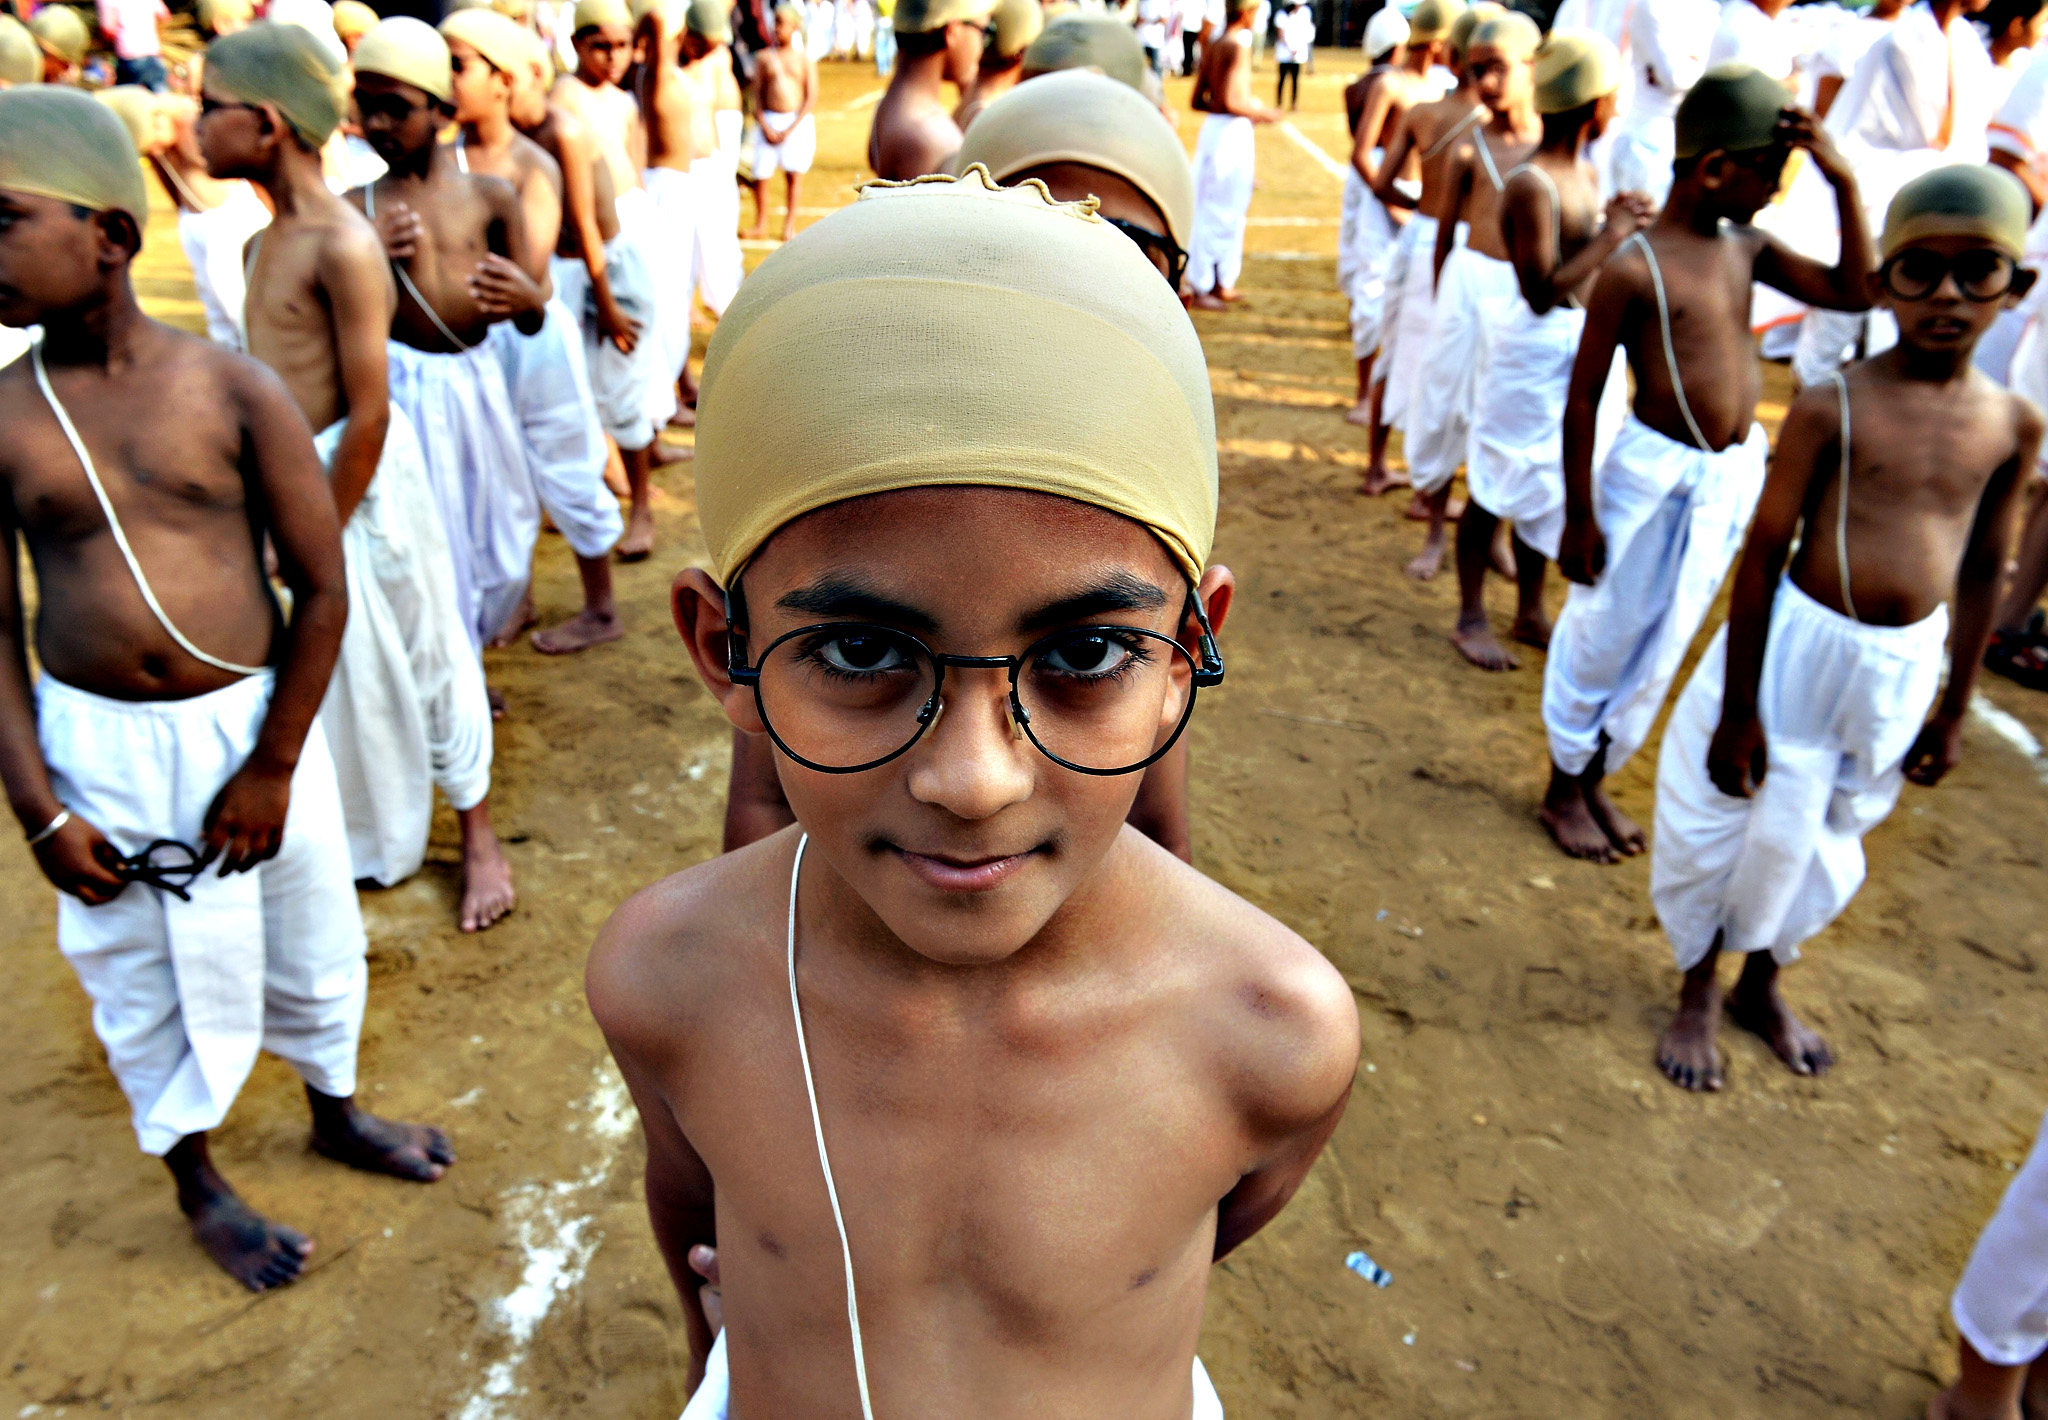 Indian children dressed as the country's founding father Mahatma Gandhi line up for a function in Mumbai on Thursday. Some 1000 children participated in the event promoting the Gandhian ideology to spread the message of simple living, reduce consumption and waste as a mark of respect to Gandhi, famed as the torchbearer of India's fight against British rule